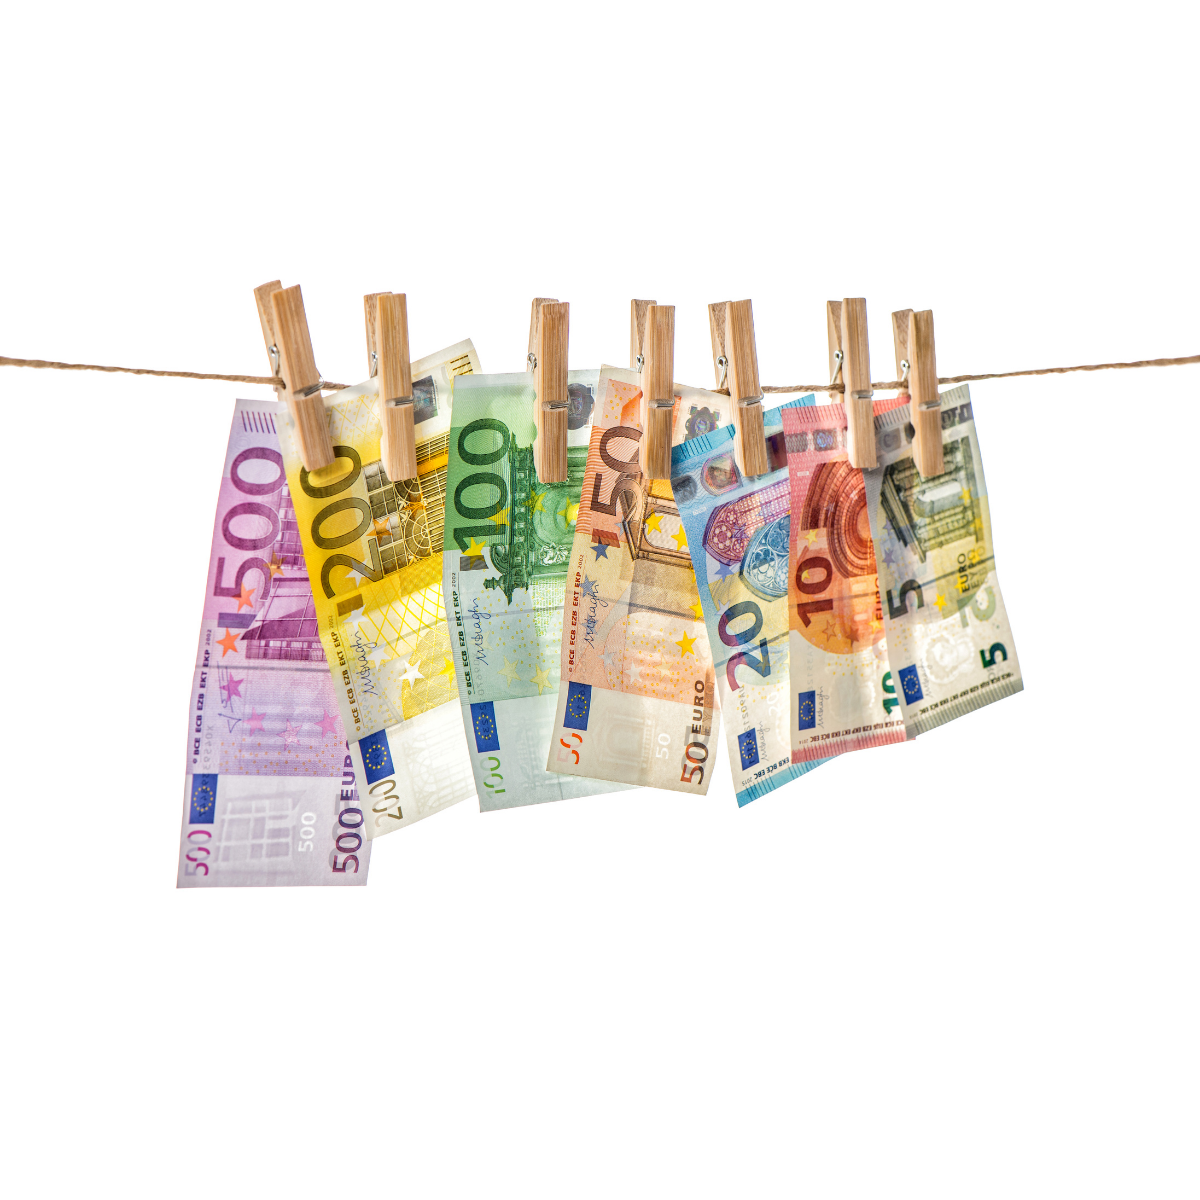 Importance of Anti-Money Laundering practices